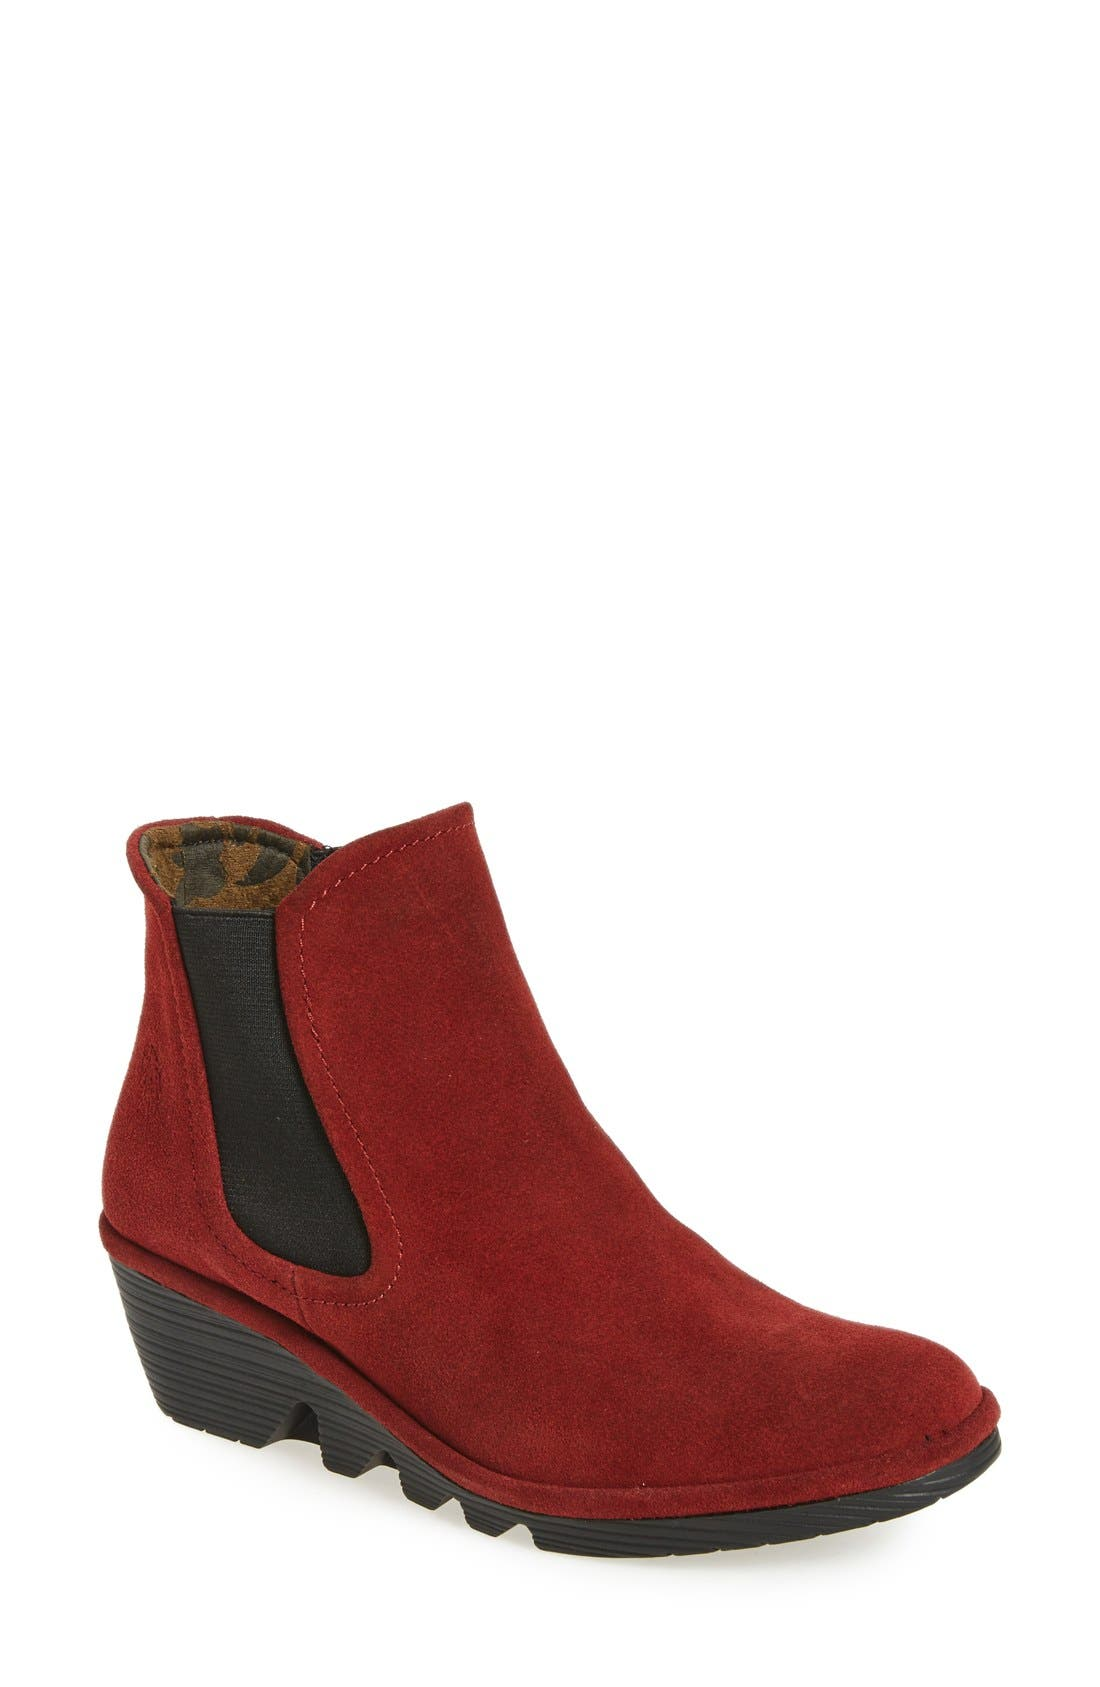 Main Image - Fly London 'Phil' Chelsea Boot (Women)